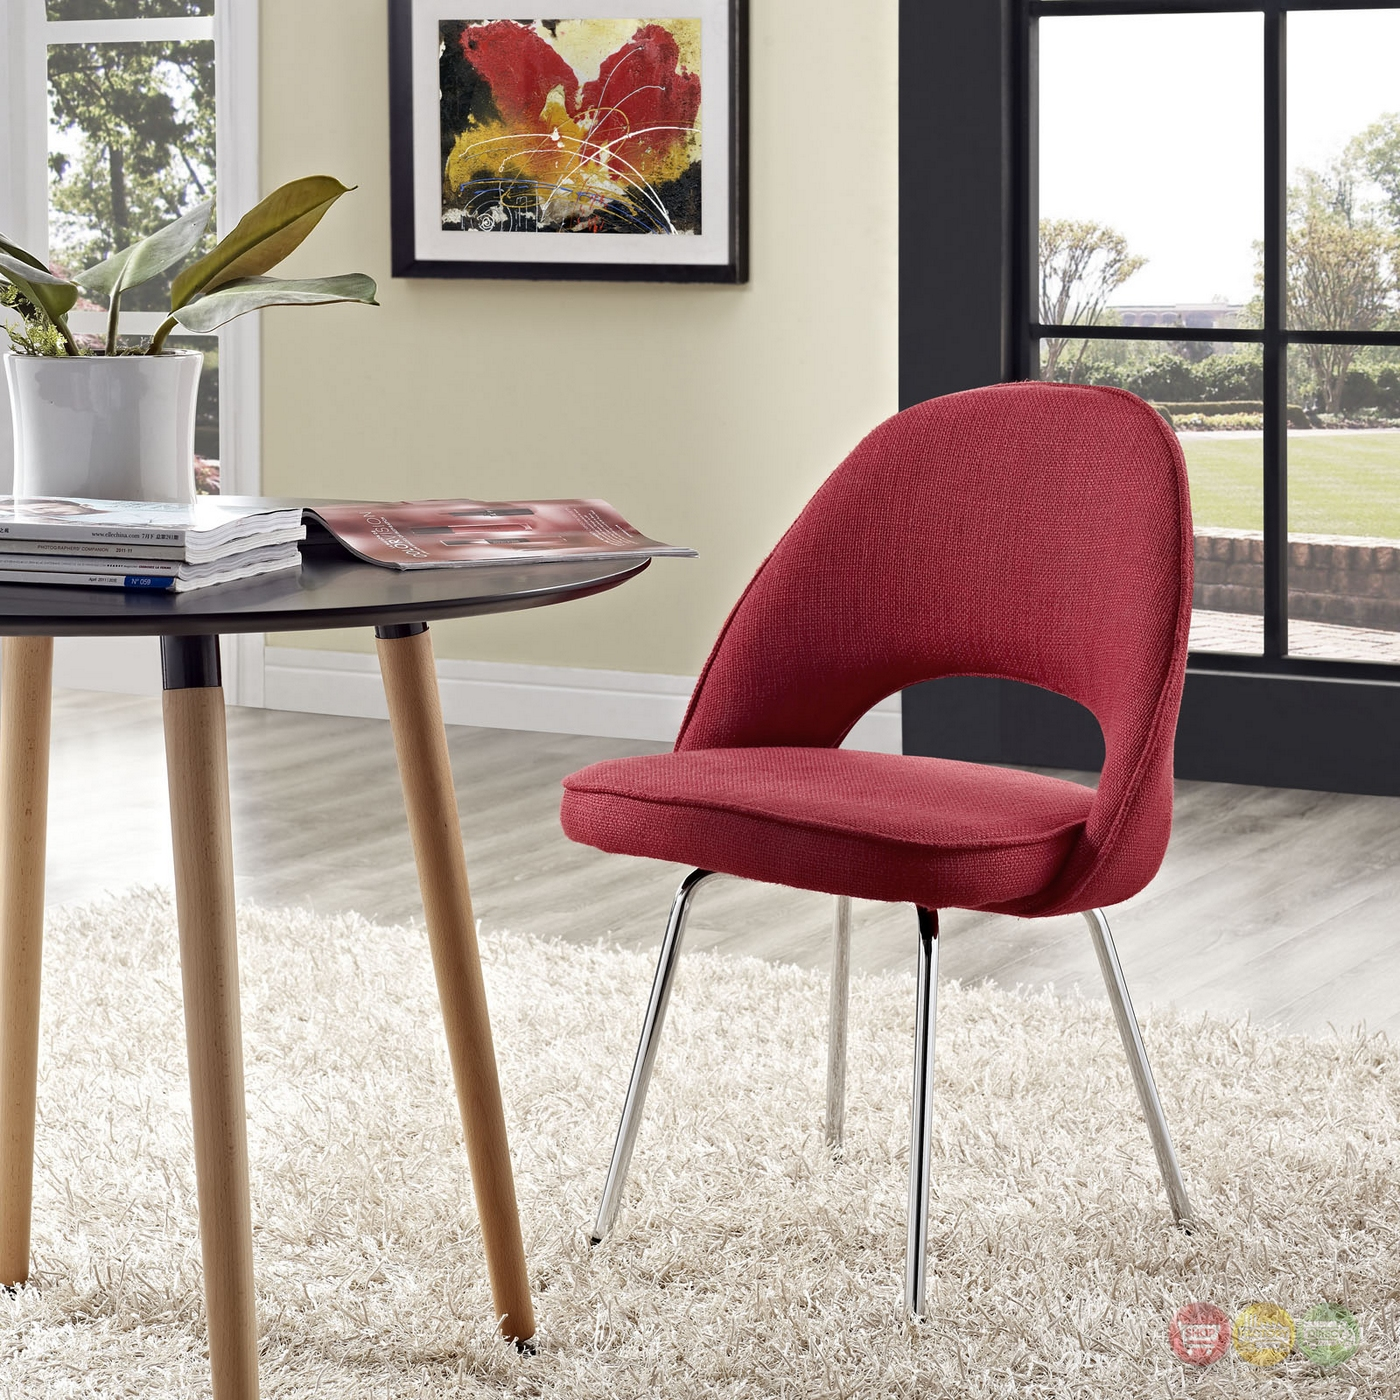 Cordelia contemporary tweed upholstered dining side chair red for Red upholstered dining chair